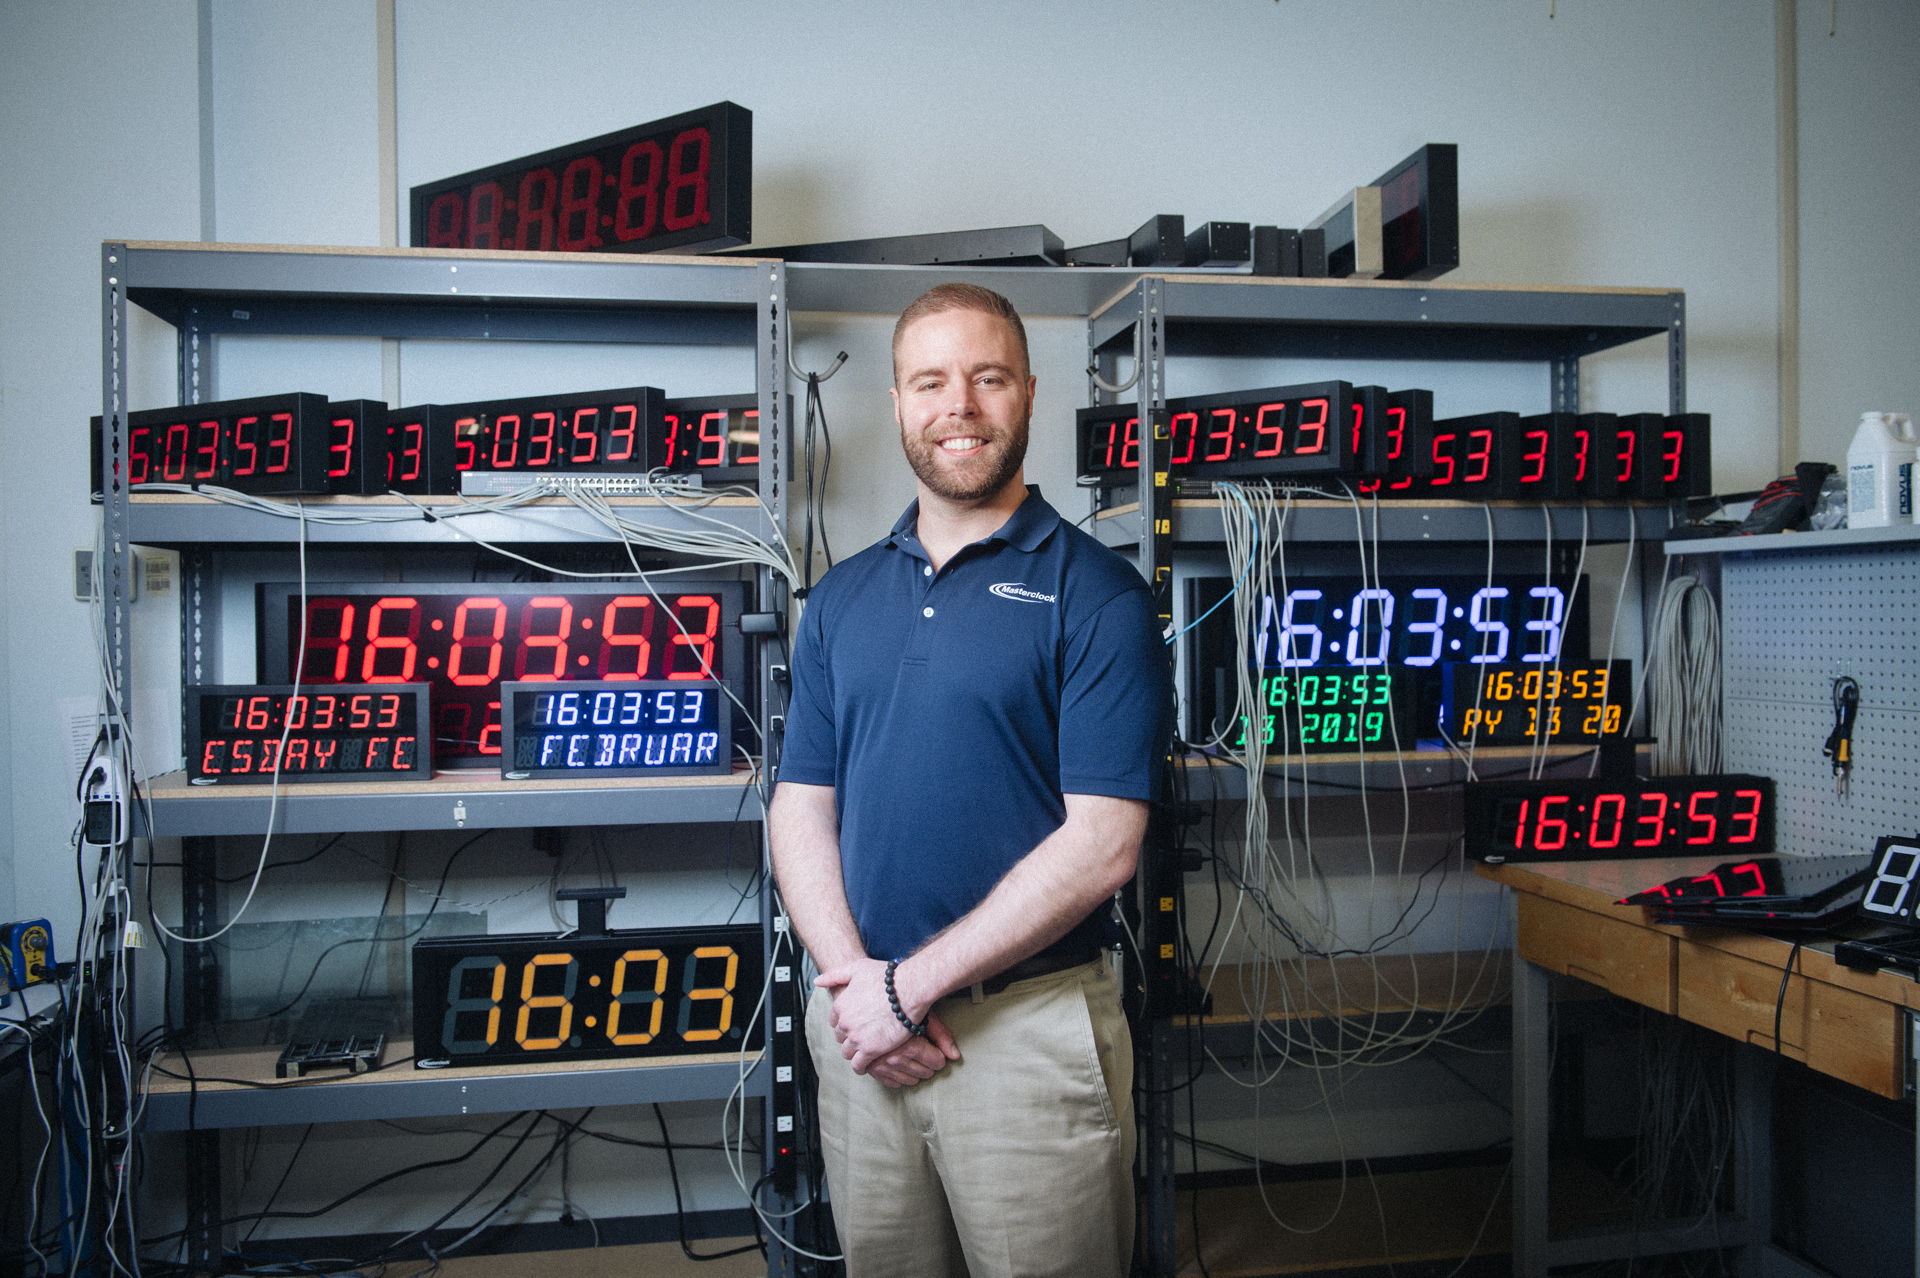 Masterclock CEO John Clark examines a time-keeping device.